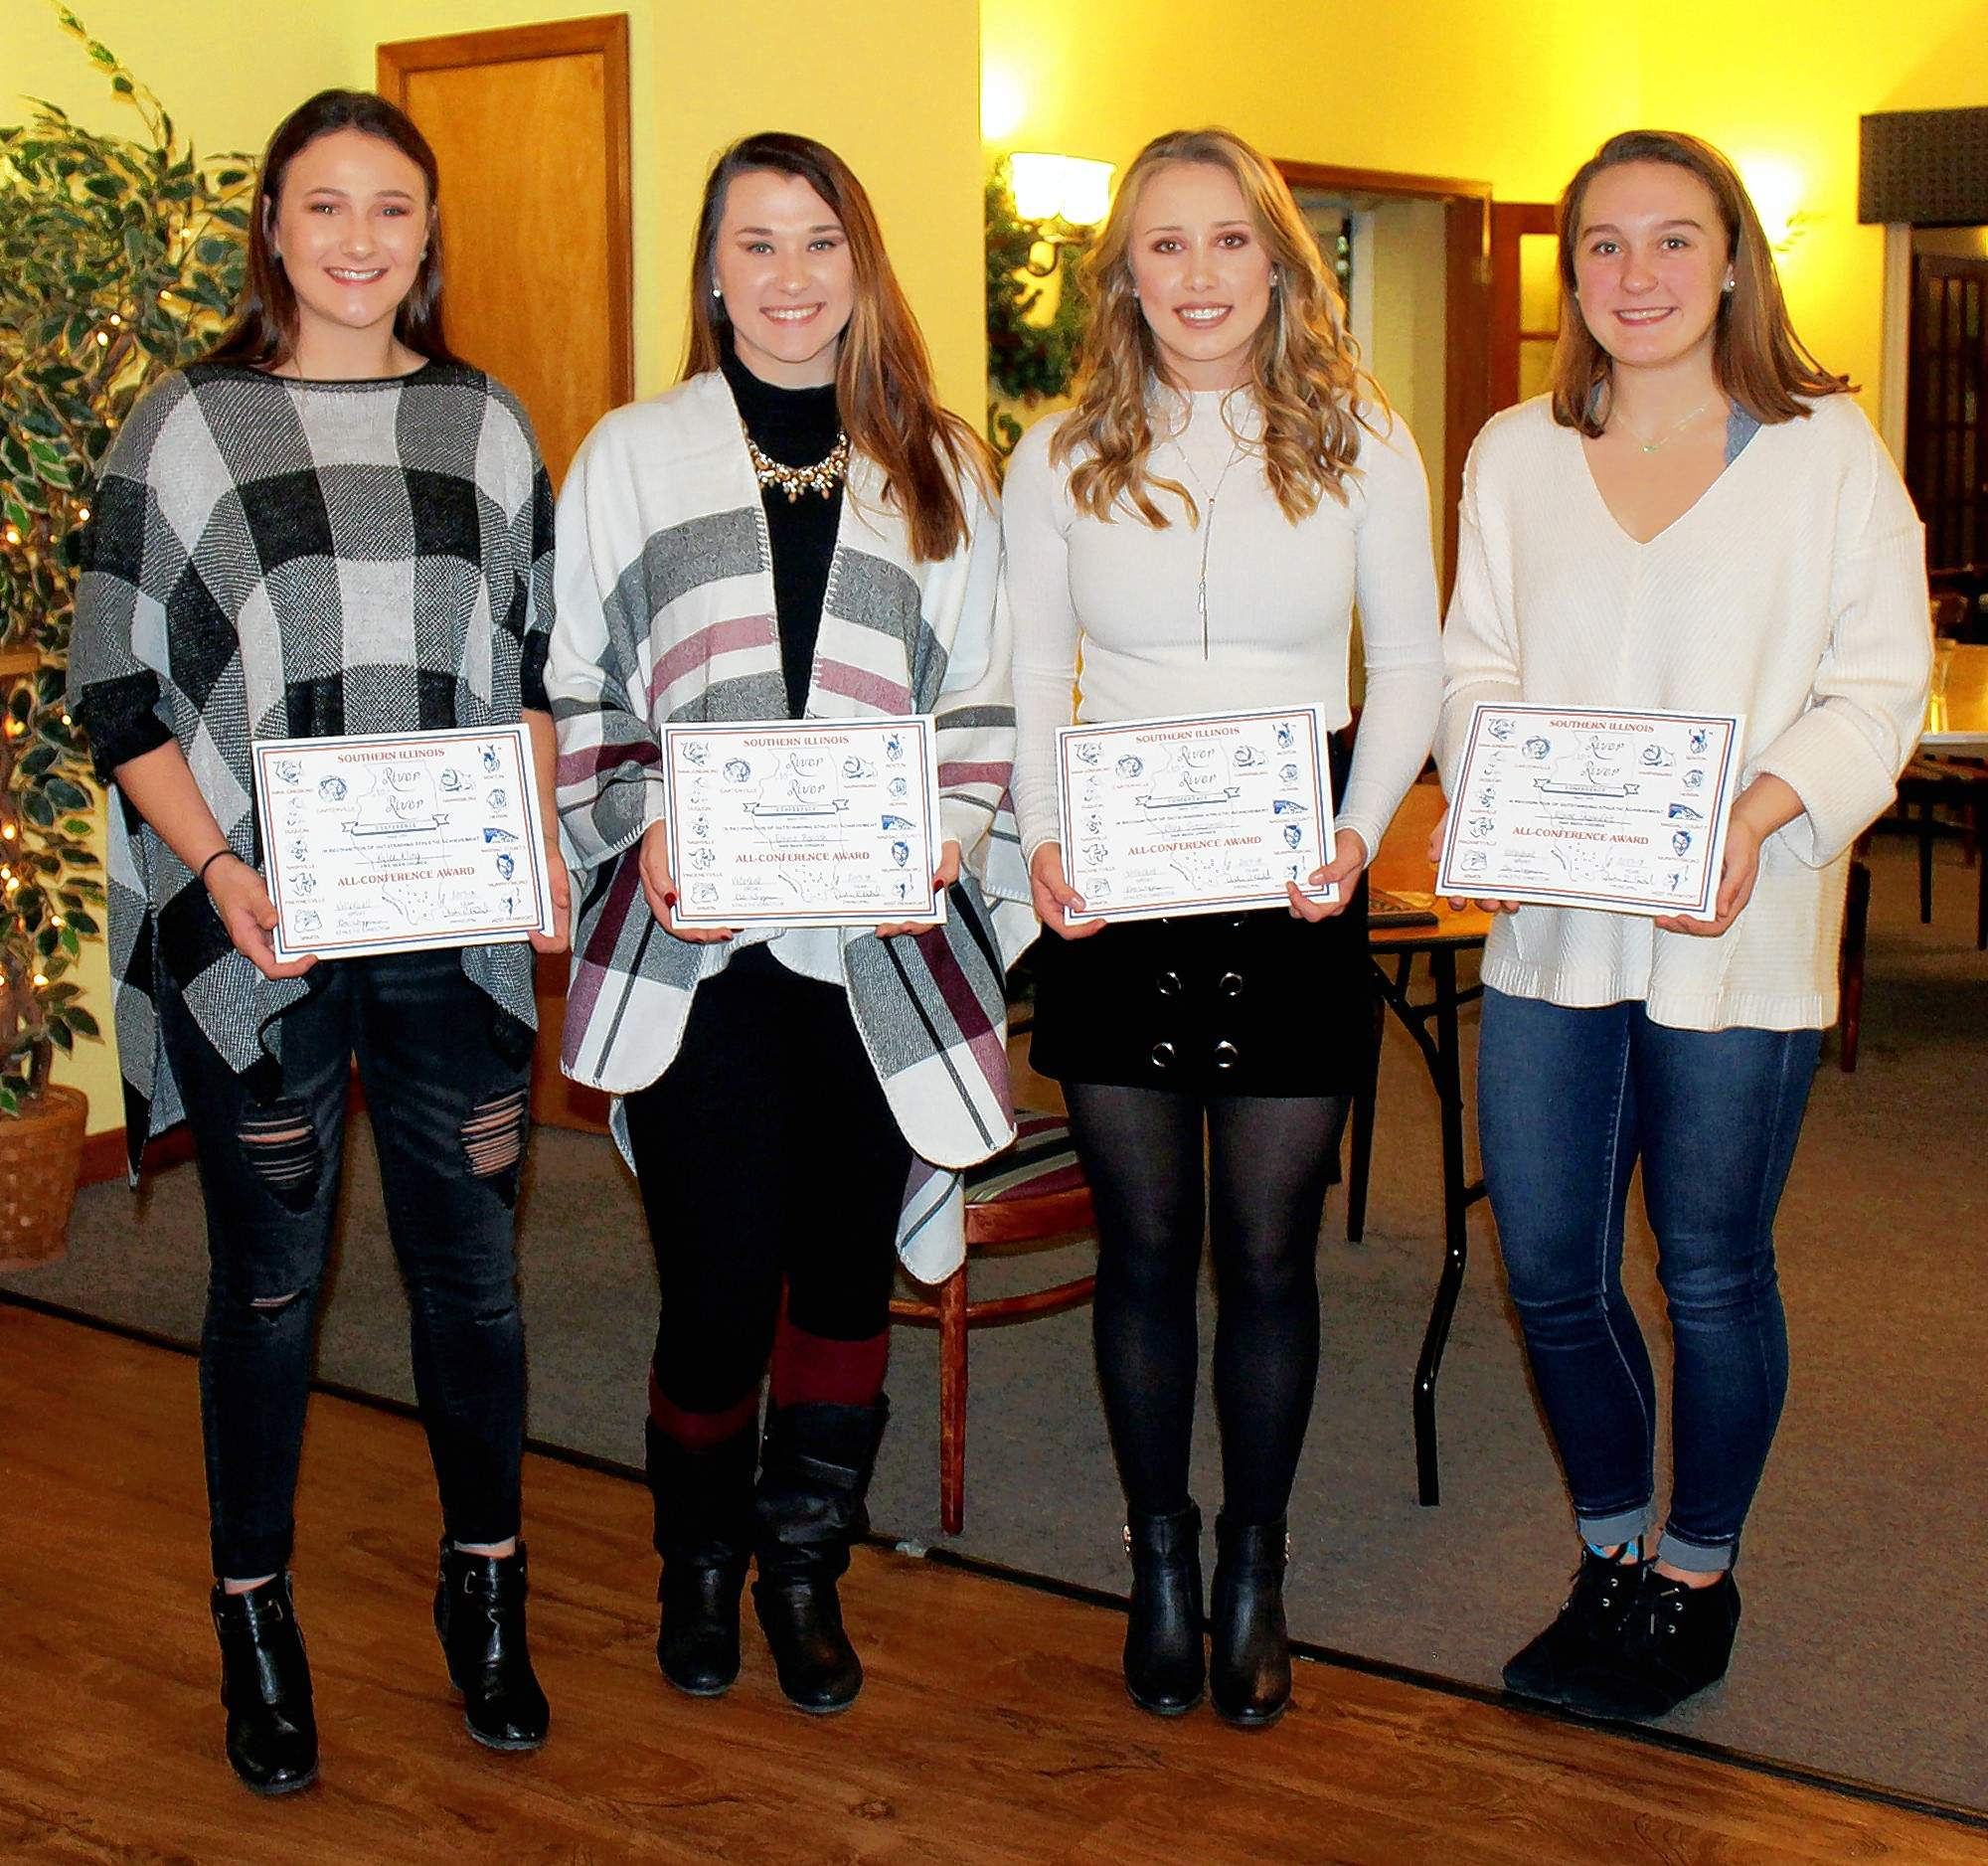 SIRR Mississippi Division All-Conference members, from left: Kylee Kling, Emma Banach, Olivia Szczepanski, Elaine Shaneyfelt. Kling, Banach and Szczepanski were also named All-South.